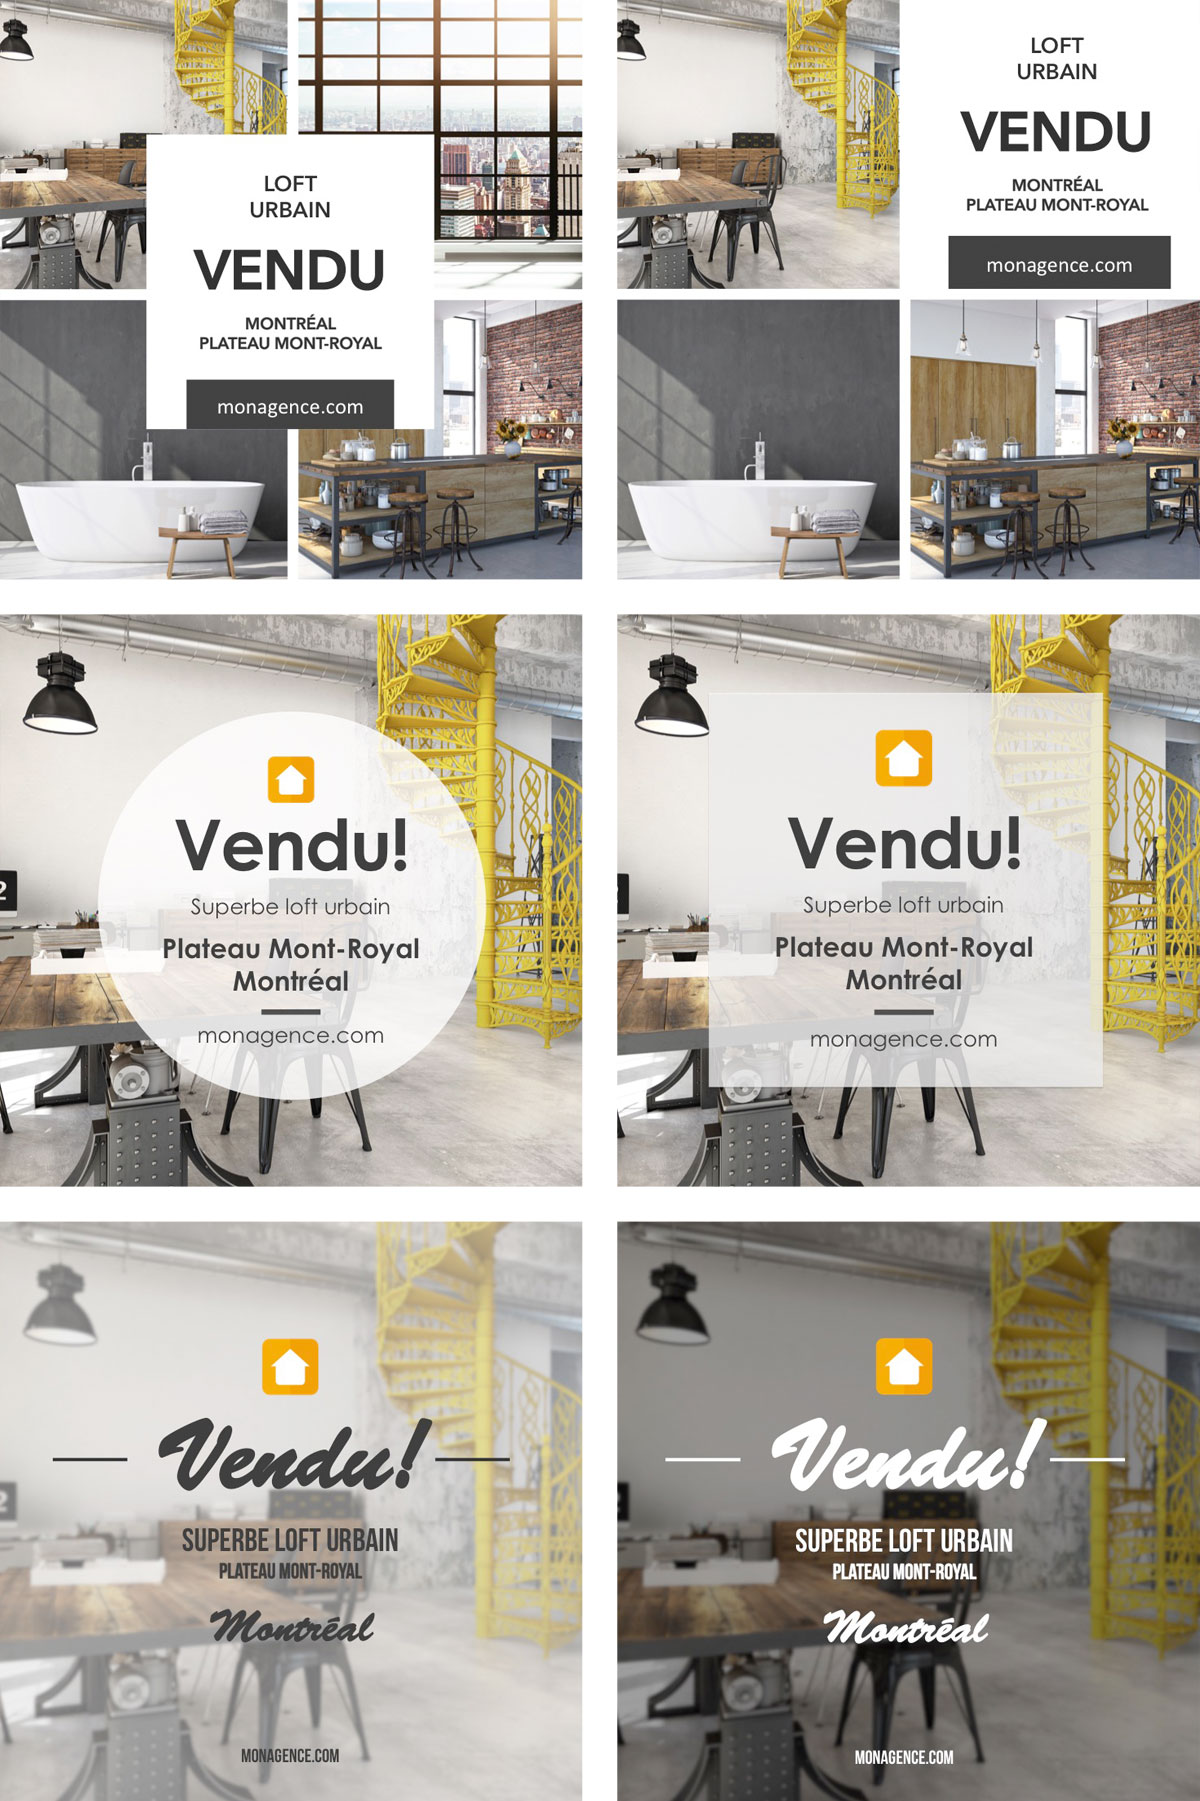 flyer immobilier communication vendu